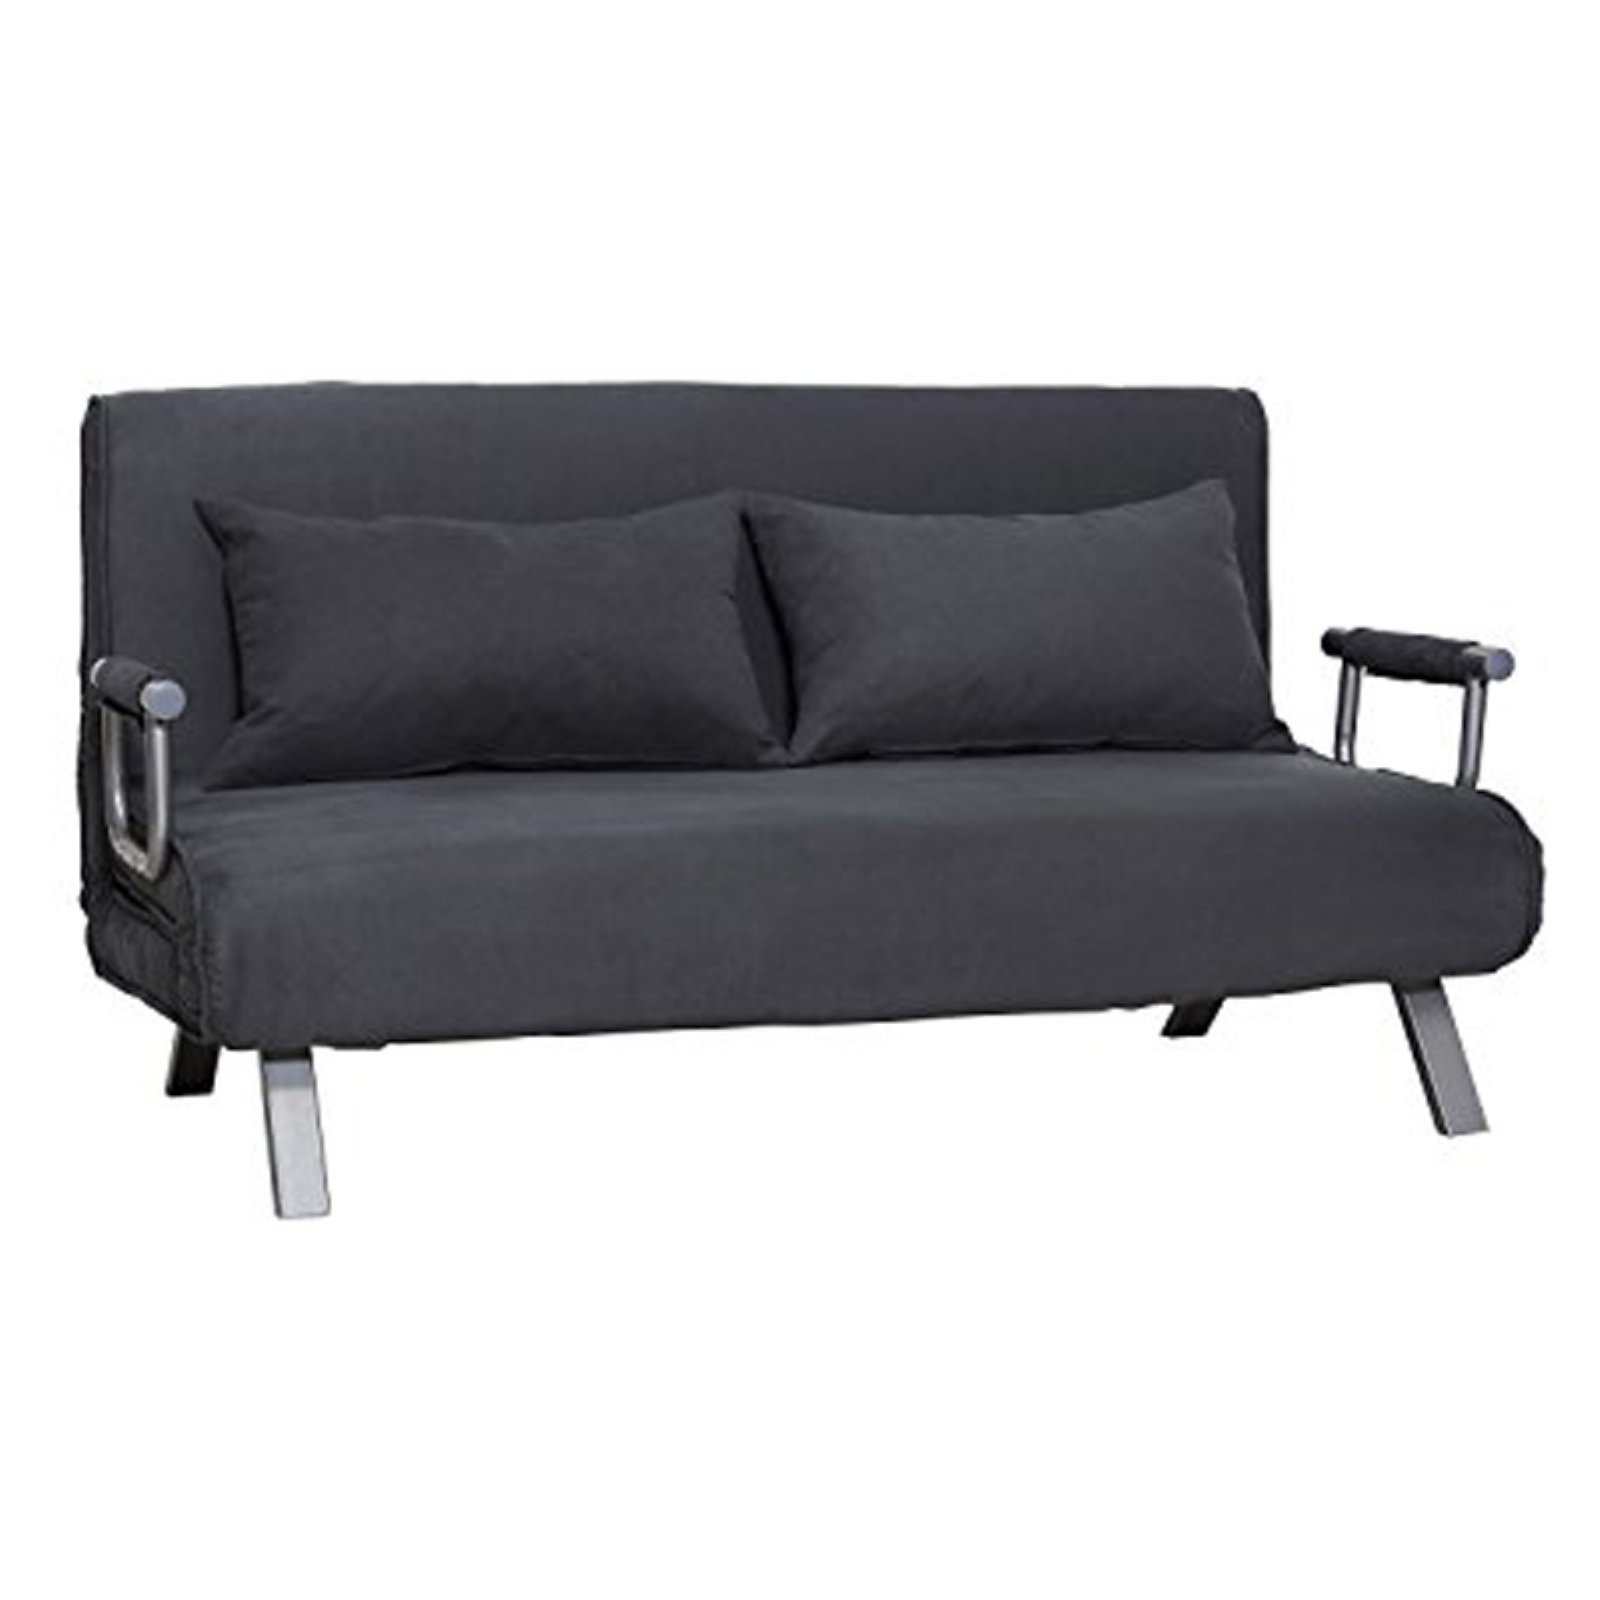 HomCom Suede Convertible Sleeper Sofa